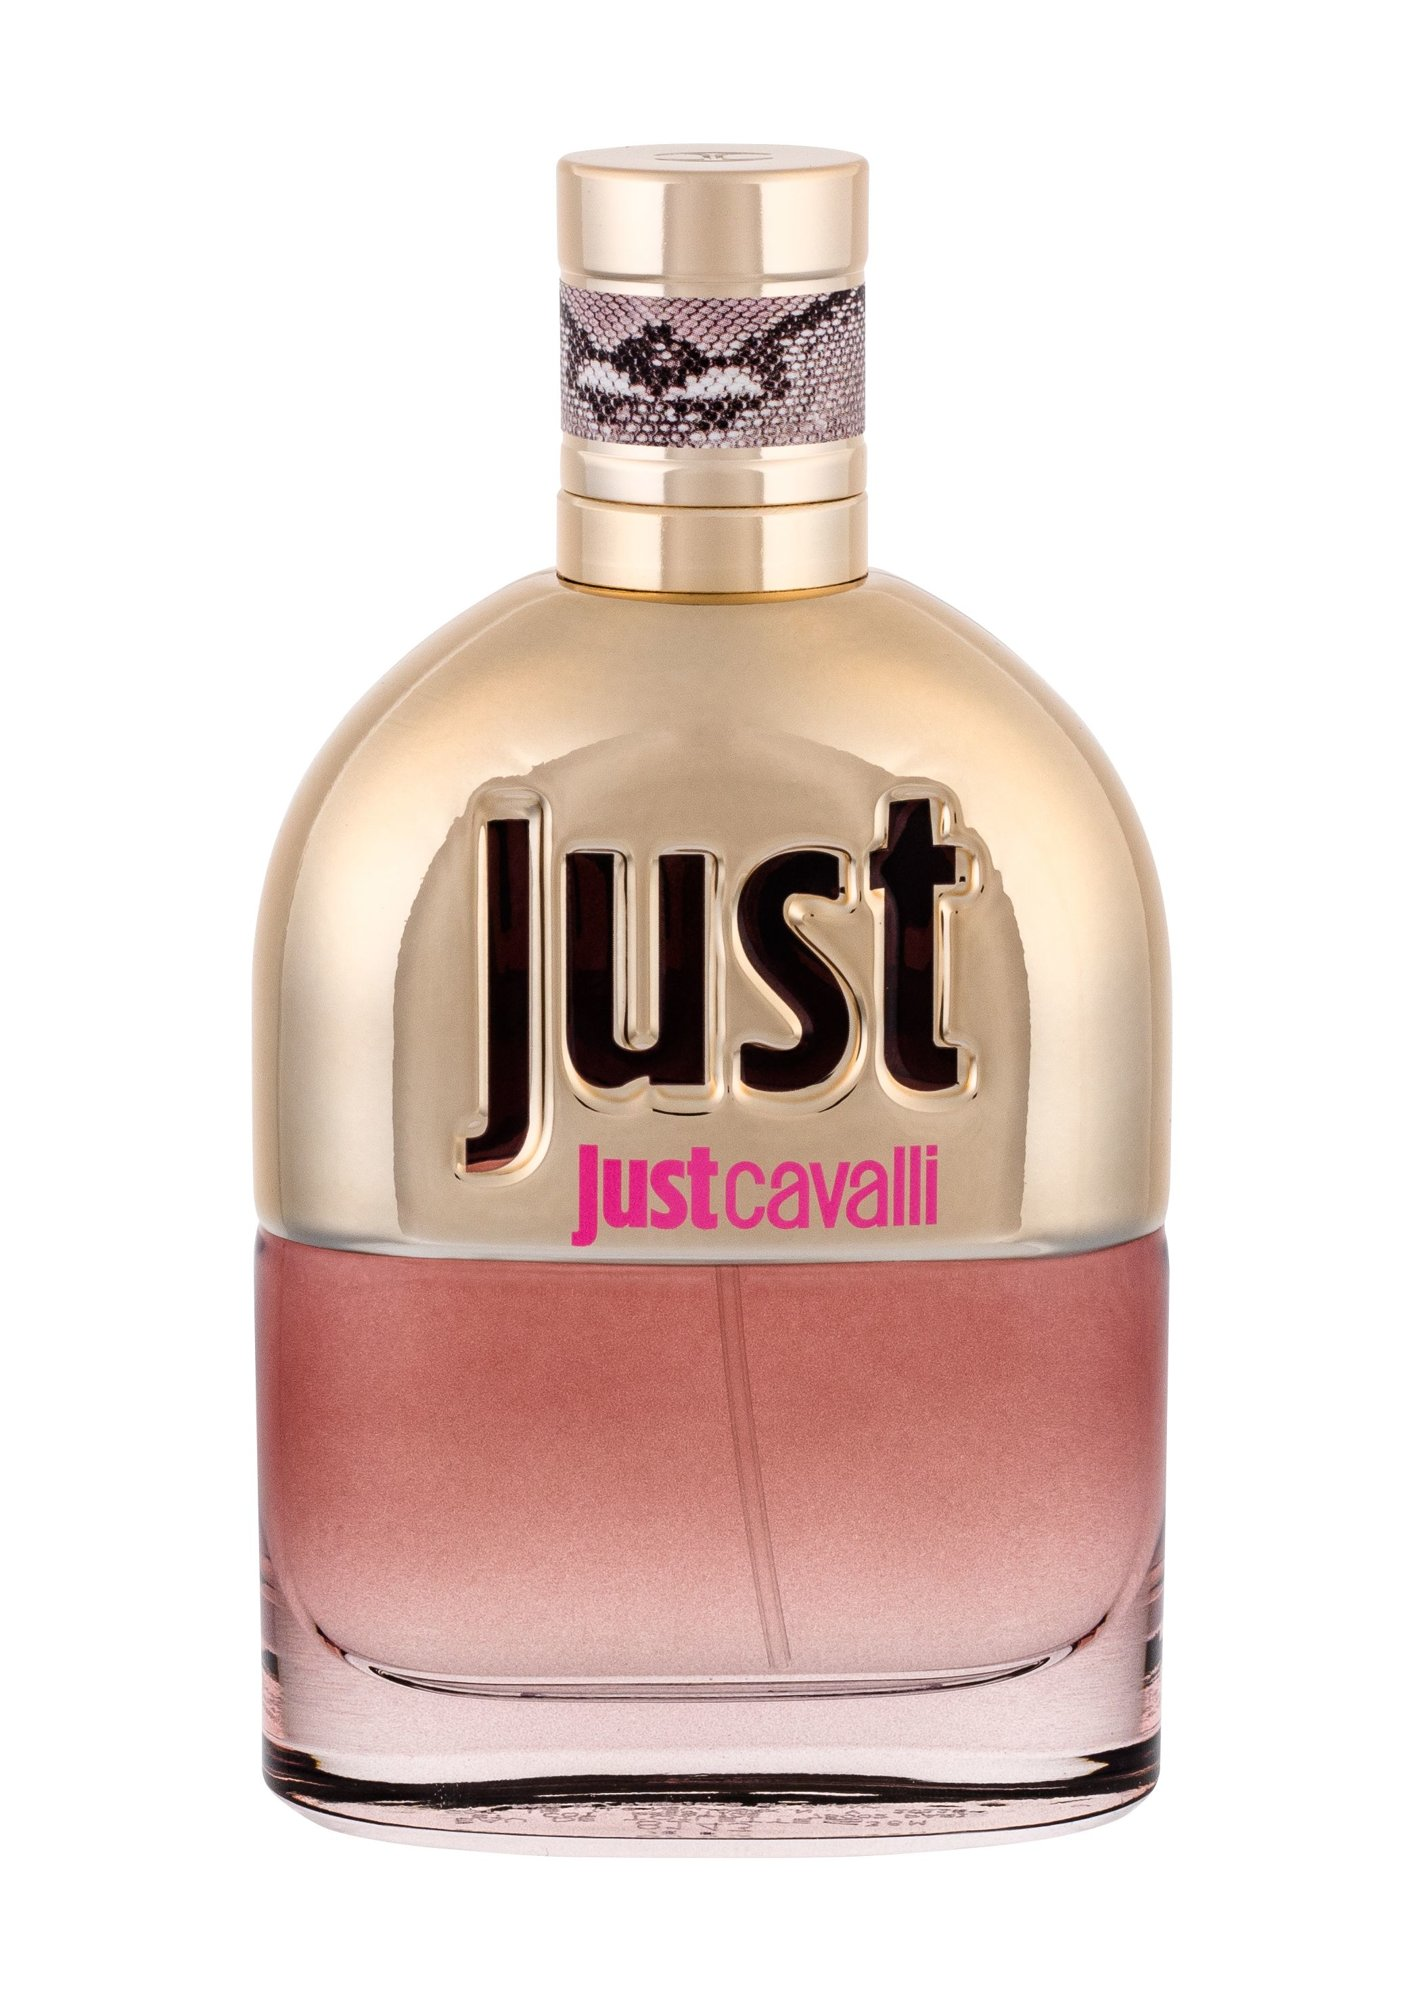 Roberto Cavalli Just Cavalli EDT 75ml